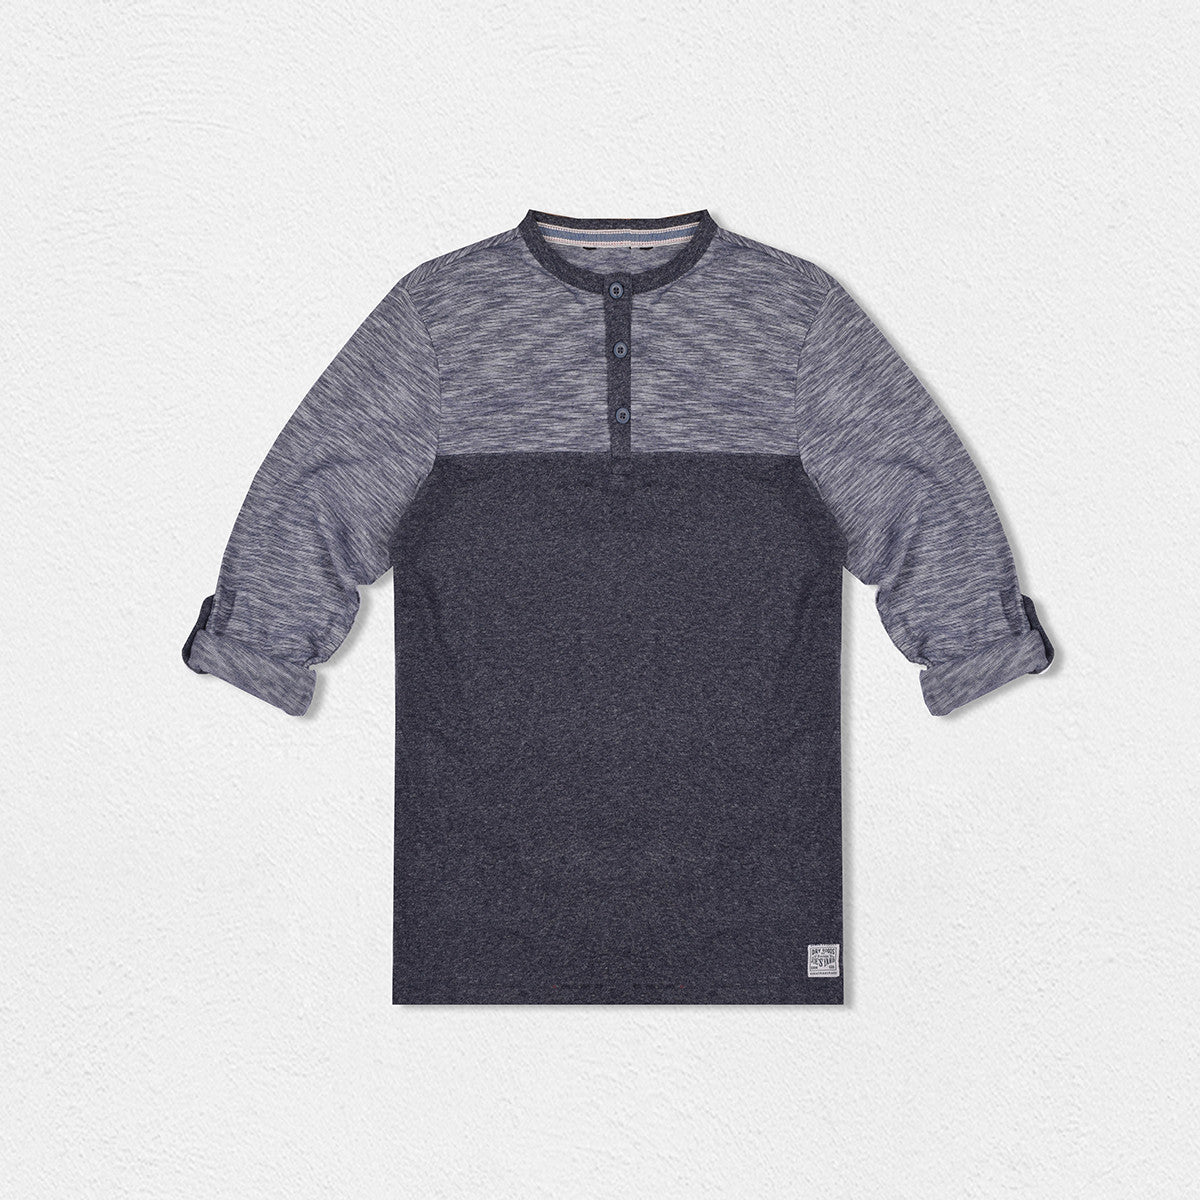 Next Henley Full Sleeve T Shirt For Kid-Blue Melange-BE2067